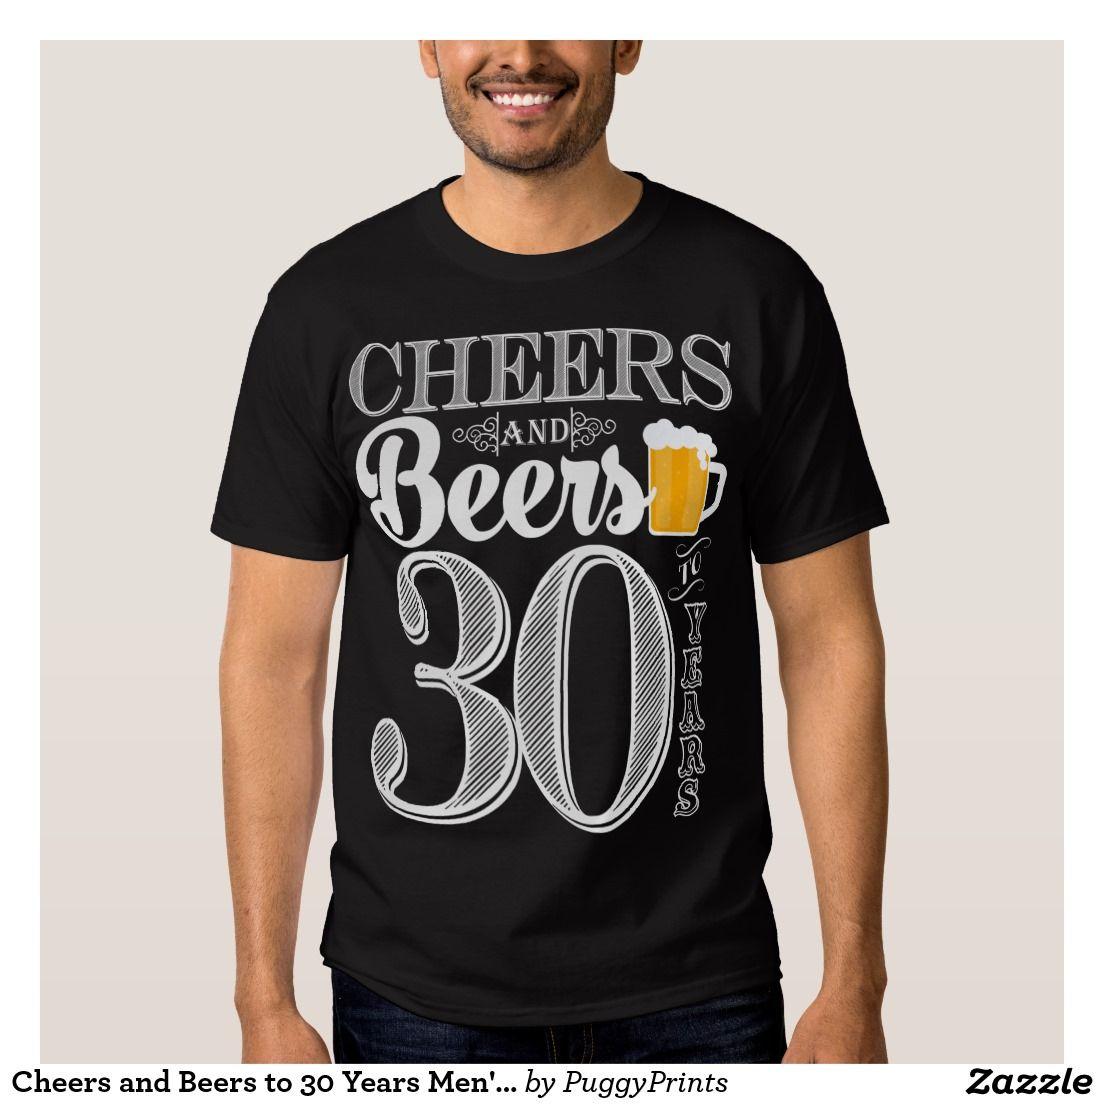 Cheer Shirt Design Ideas cheer pride t shirt photo Cheers And Beers To 30 Years Mens T Shirt